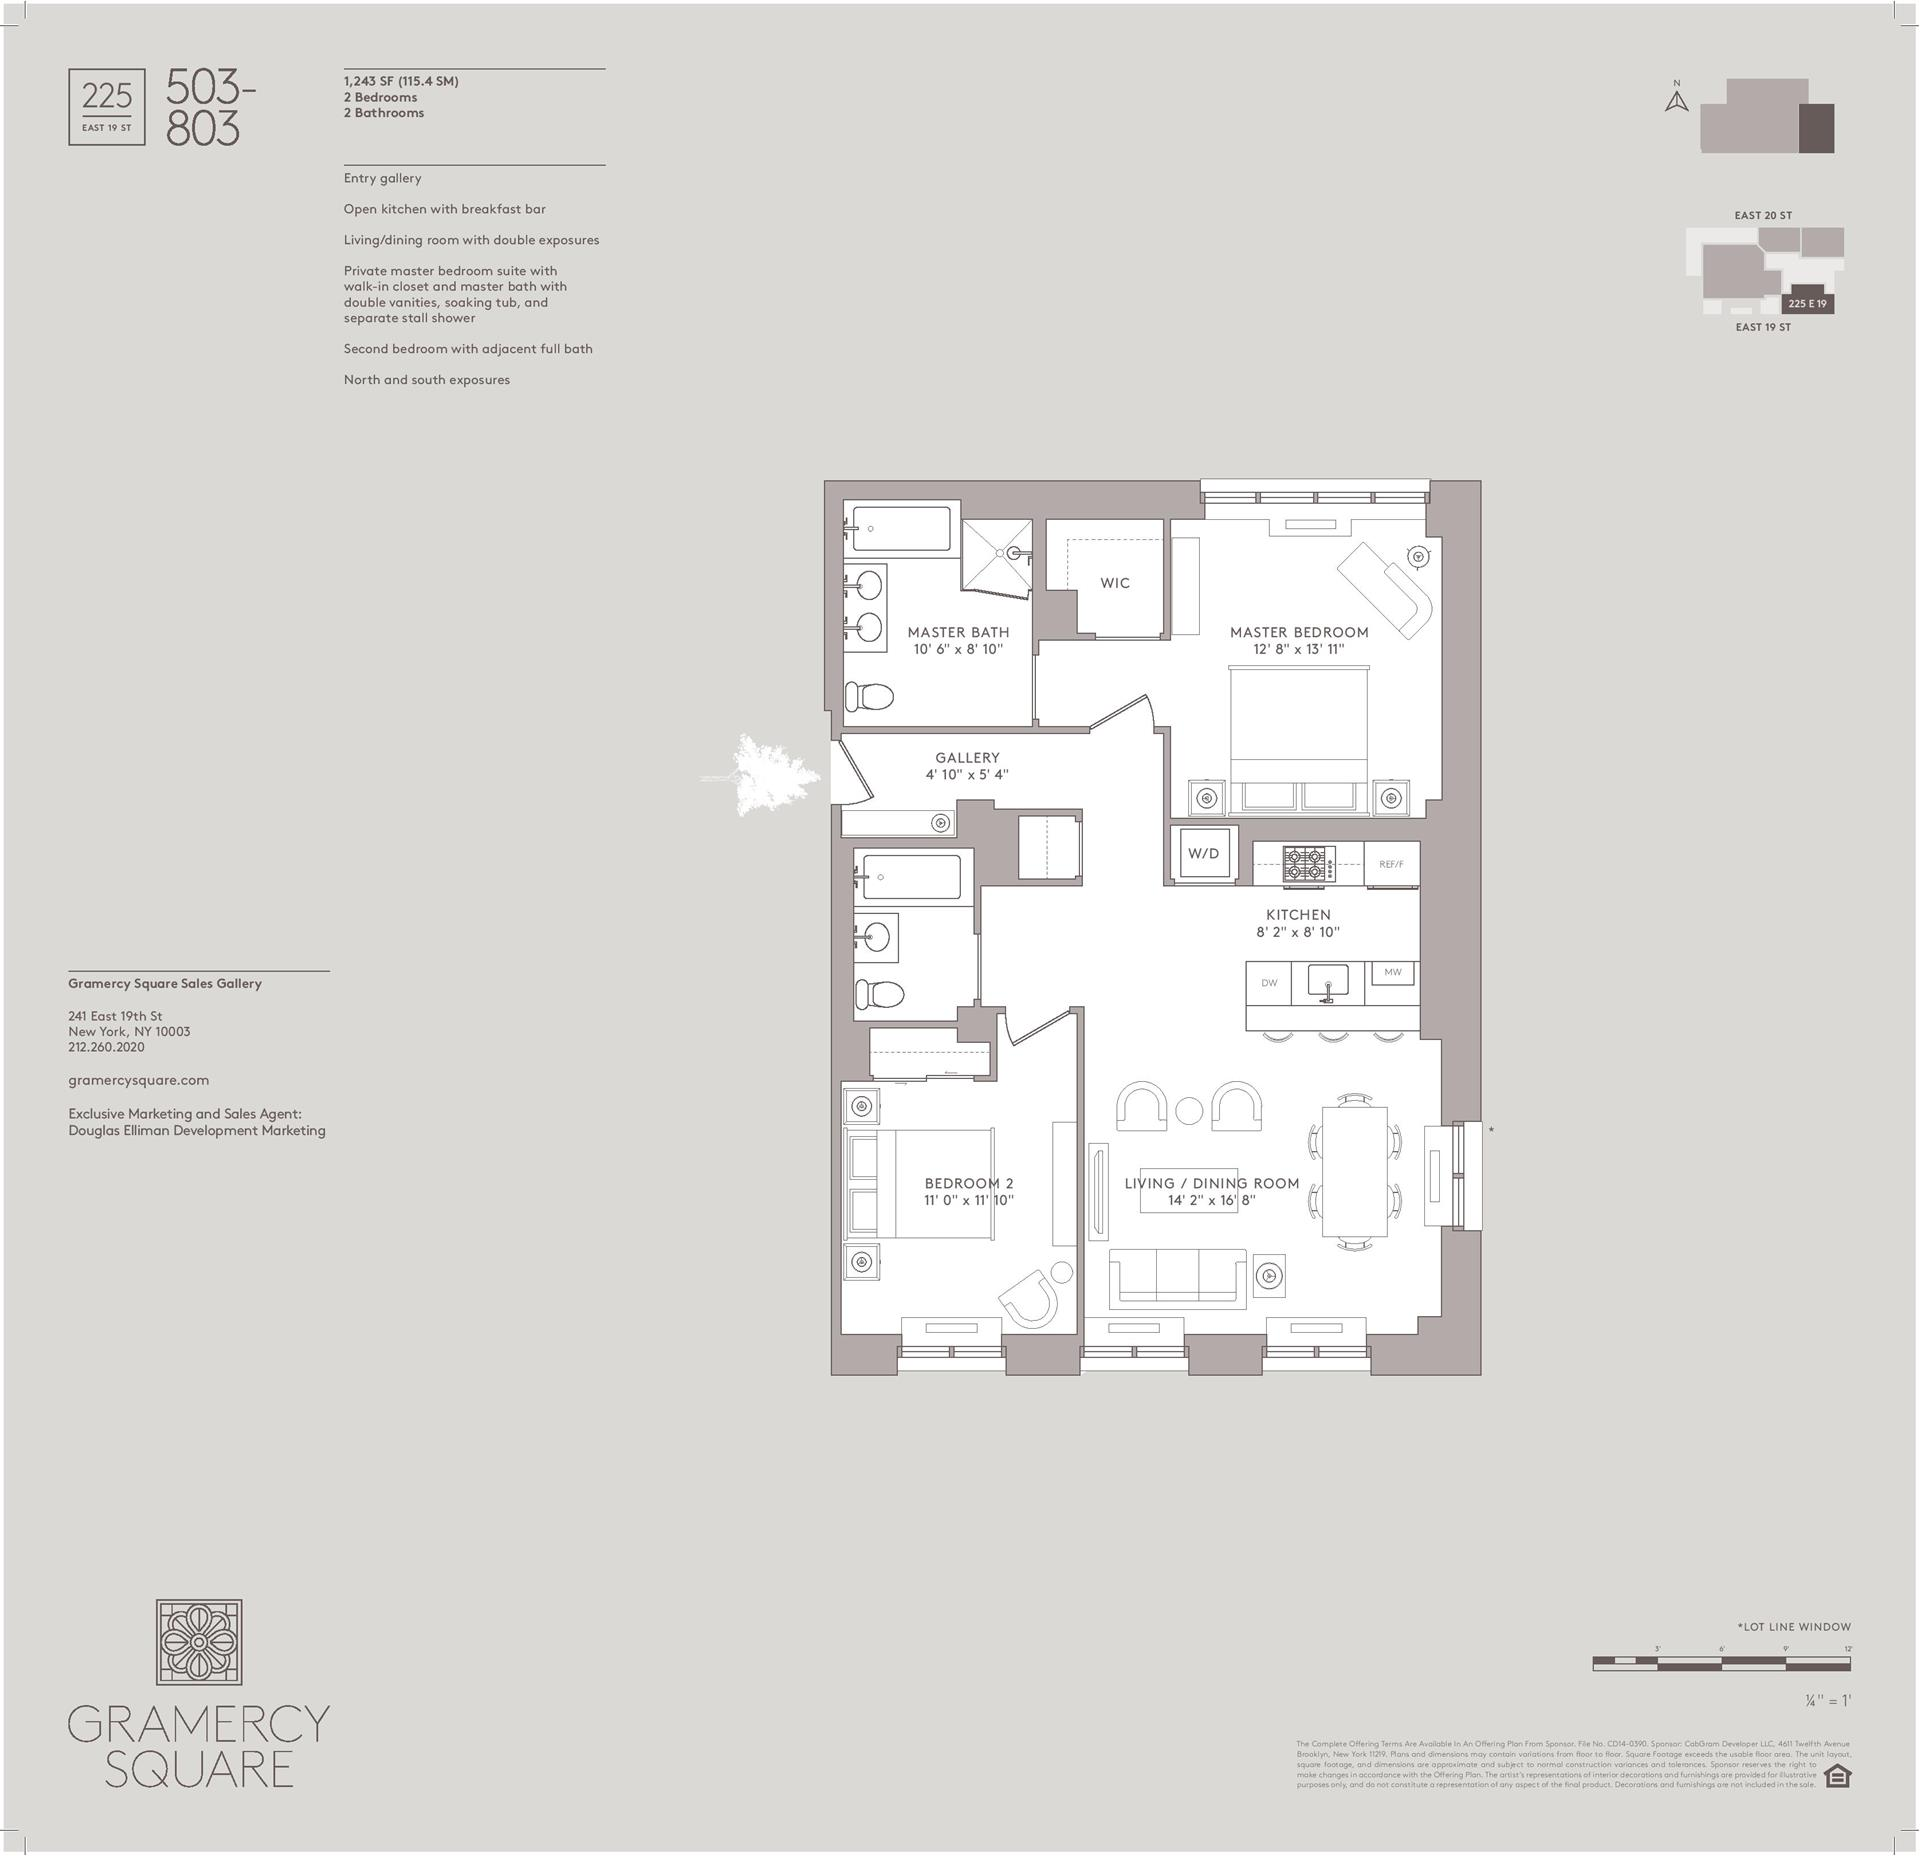 Floor plan of Gramercy Square, 225 East 19th St, 503 - Gramercy - Union Square, New York